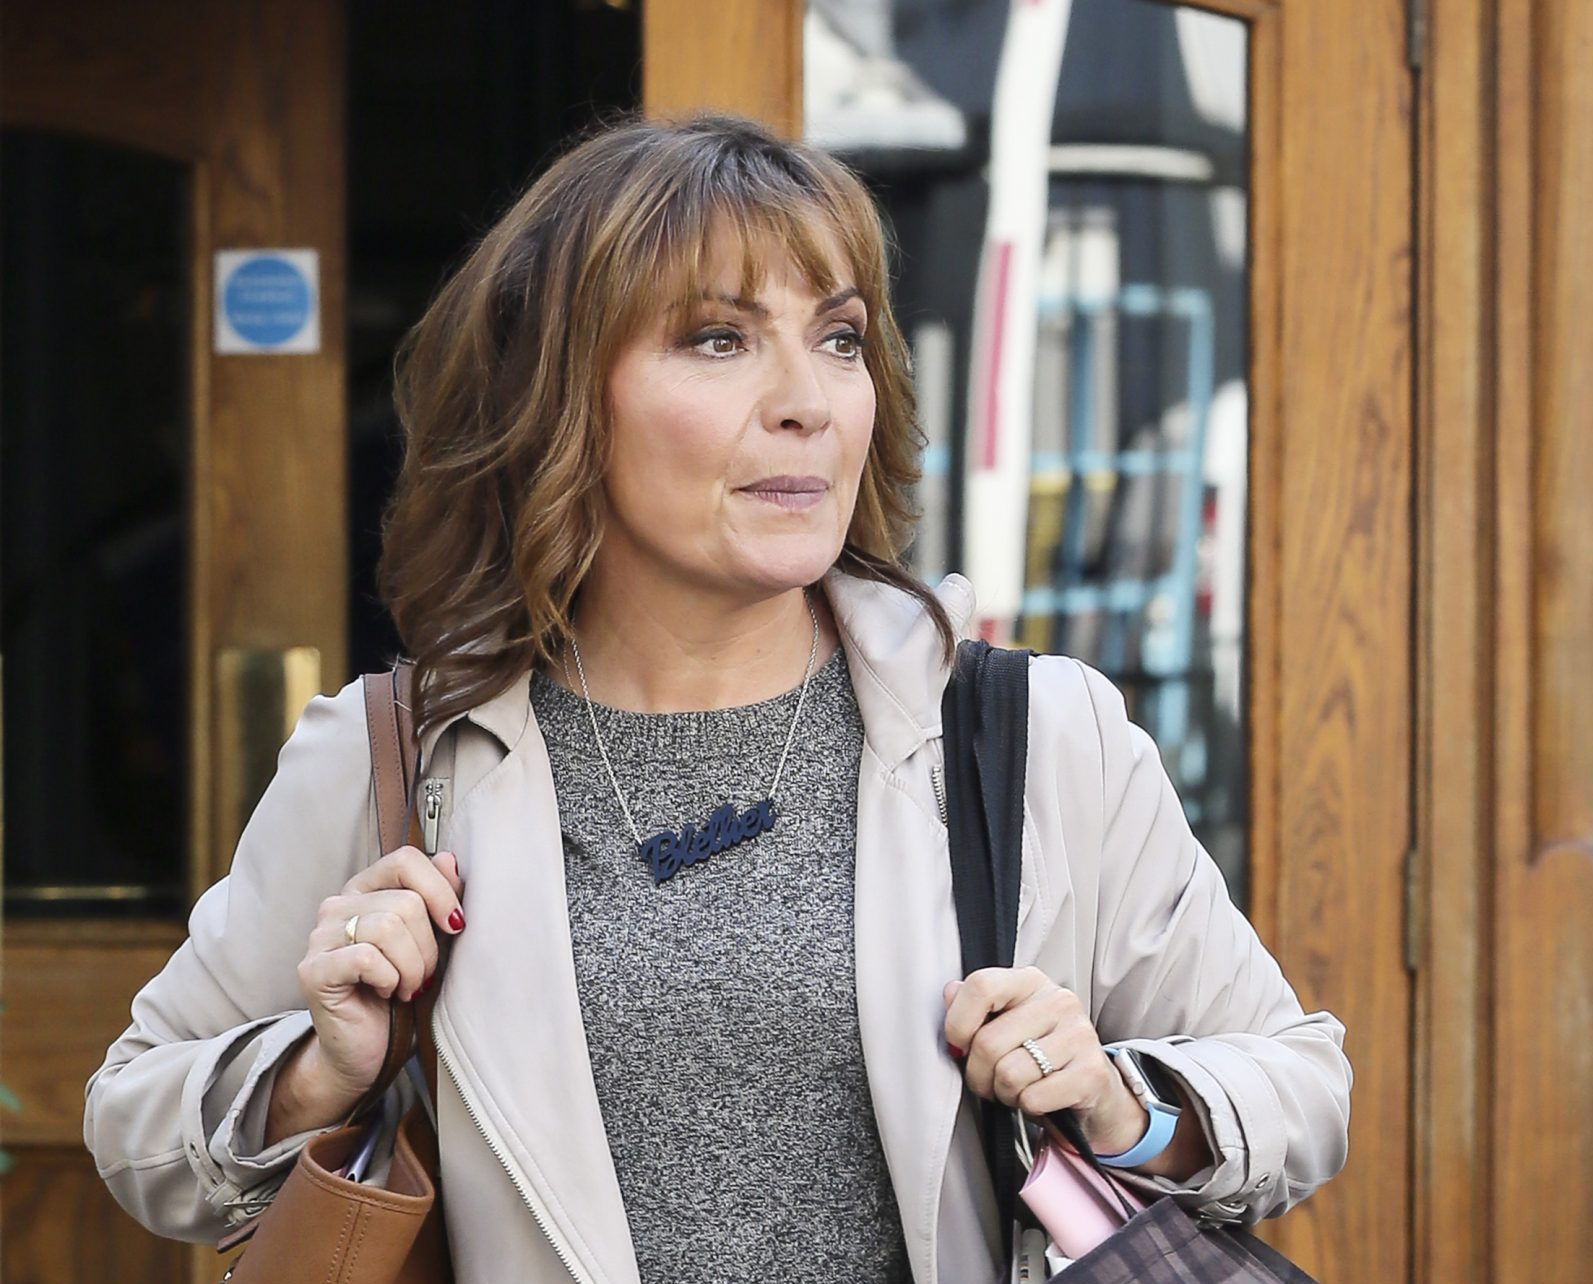 Emotional Lorraine Kelly thanks NHS as she reveals her father is battling serious lung infection